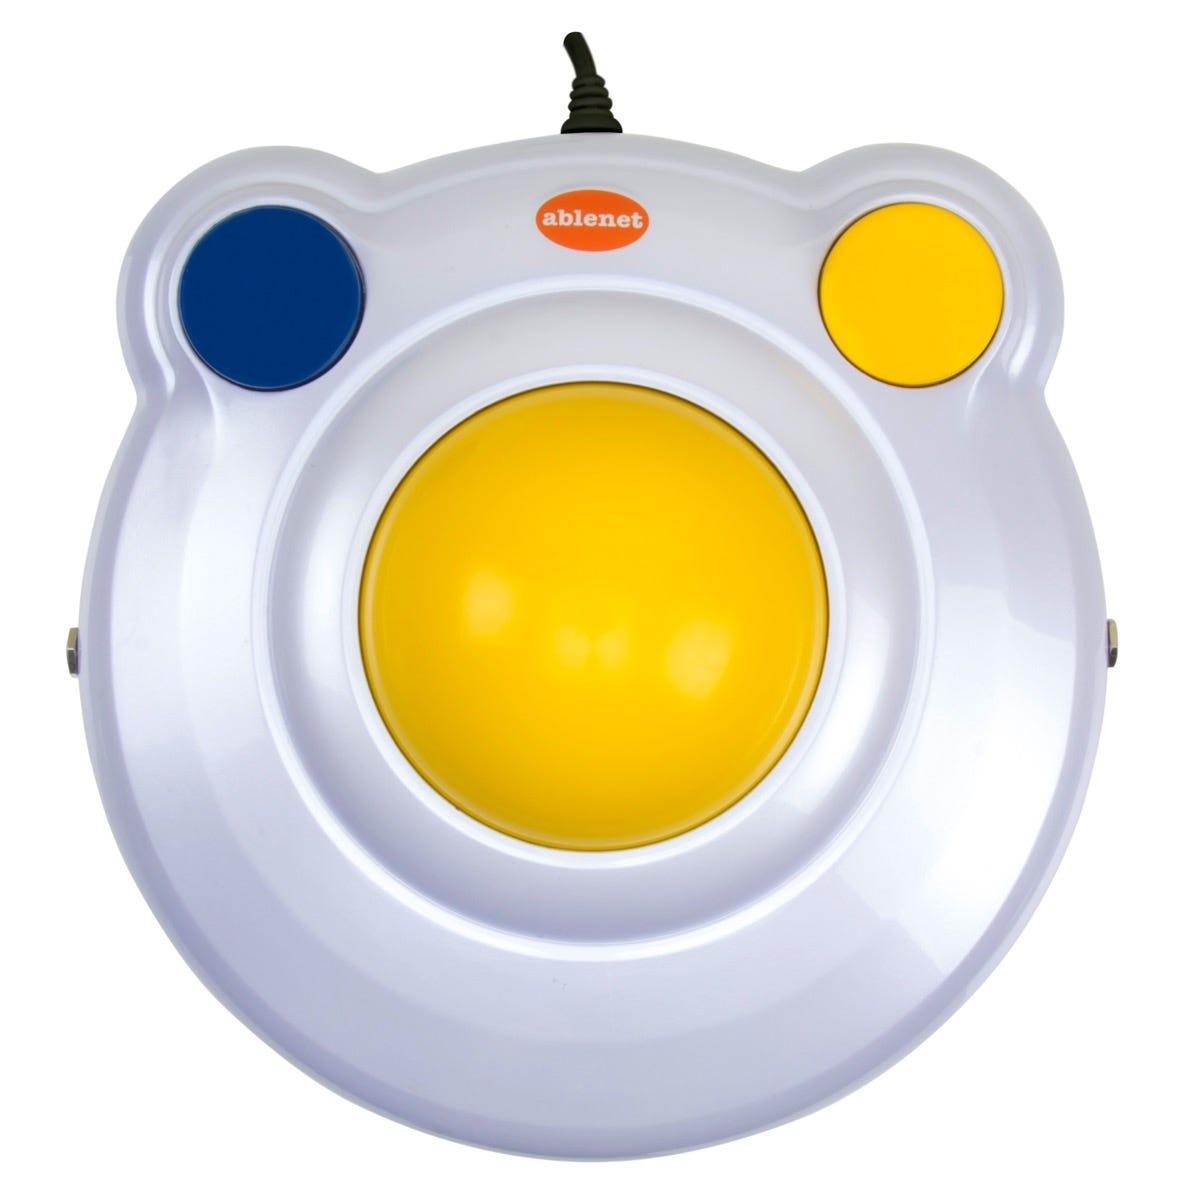 BIGtrack 2 Trackball Mouse